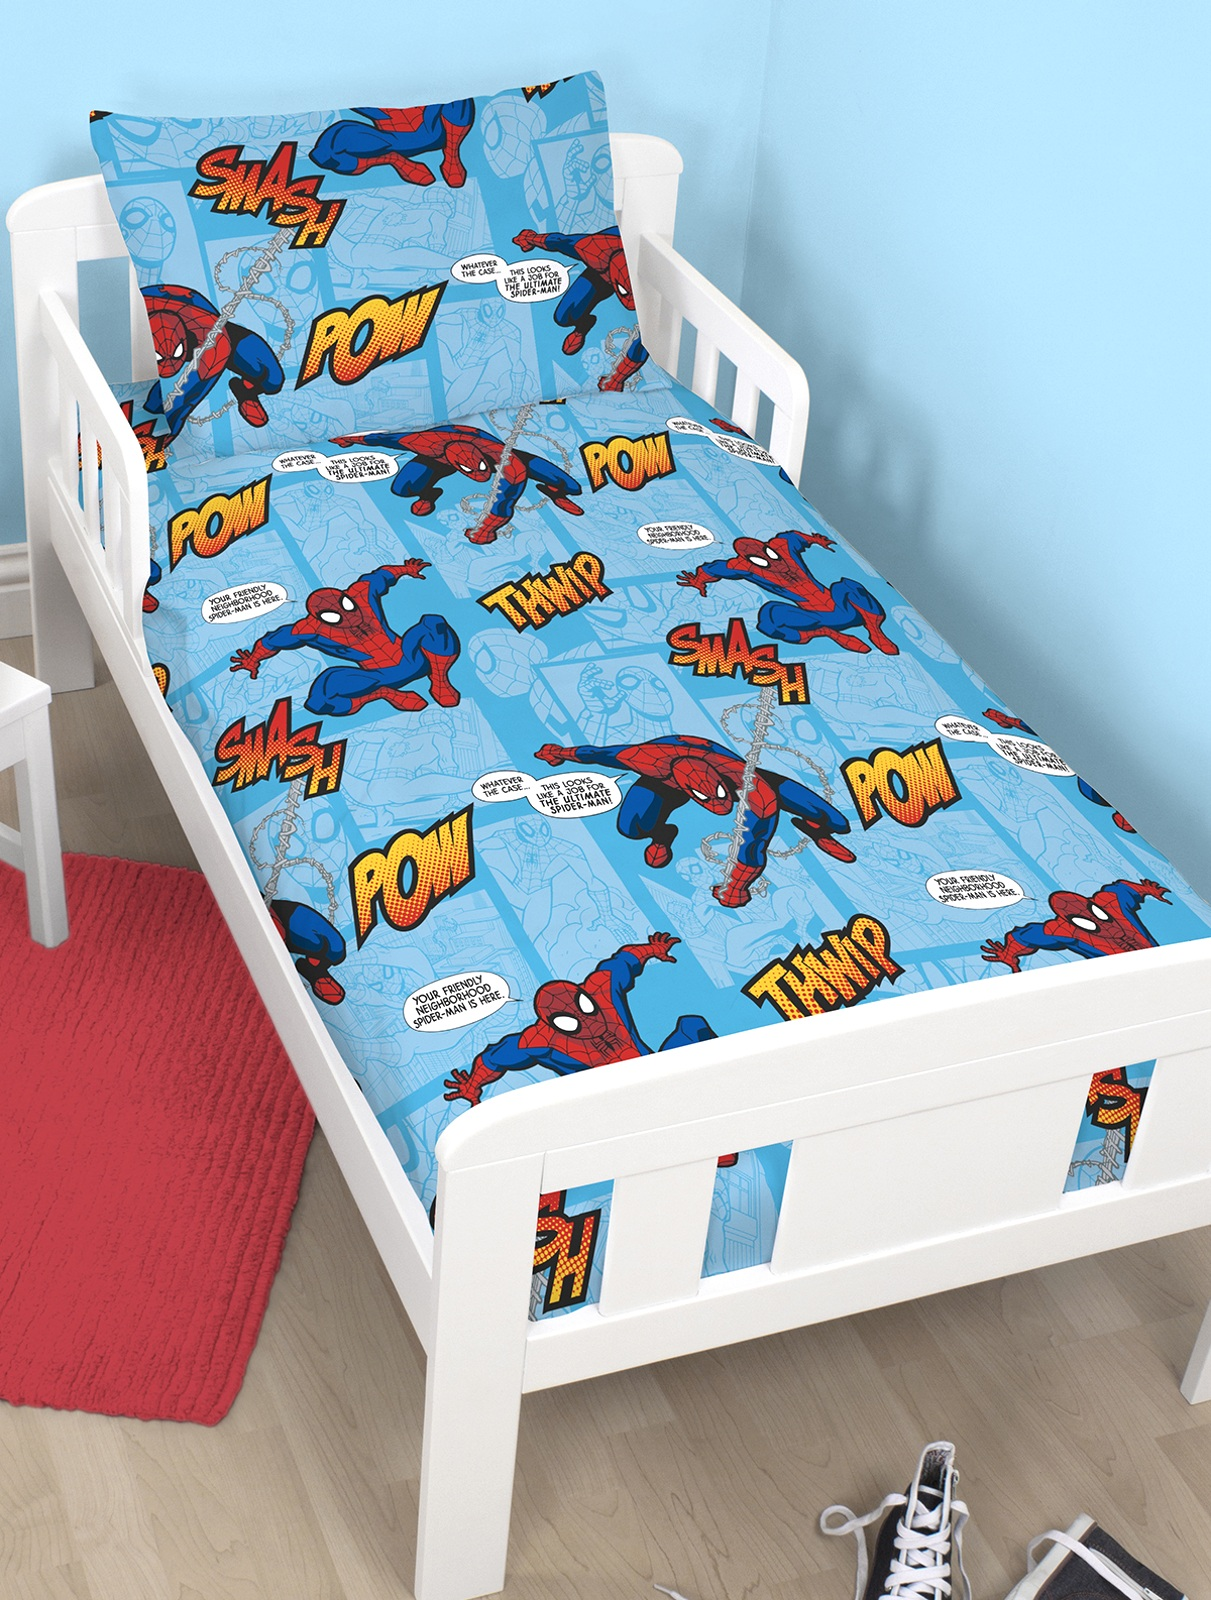 Bettwäsche Spongebob Spiderman Thwip 4 In 1 Kinderbett Garnitur BettwÄsche